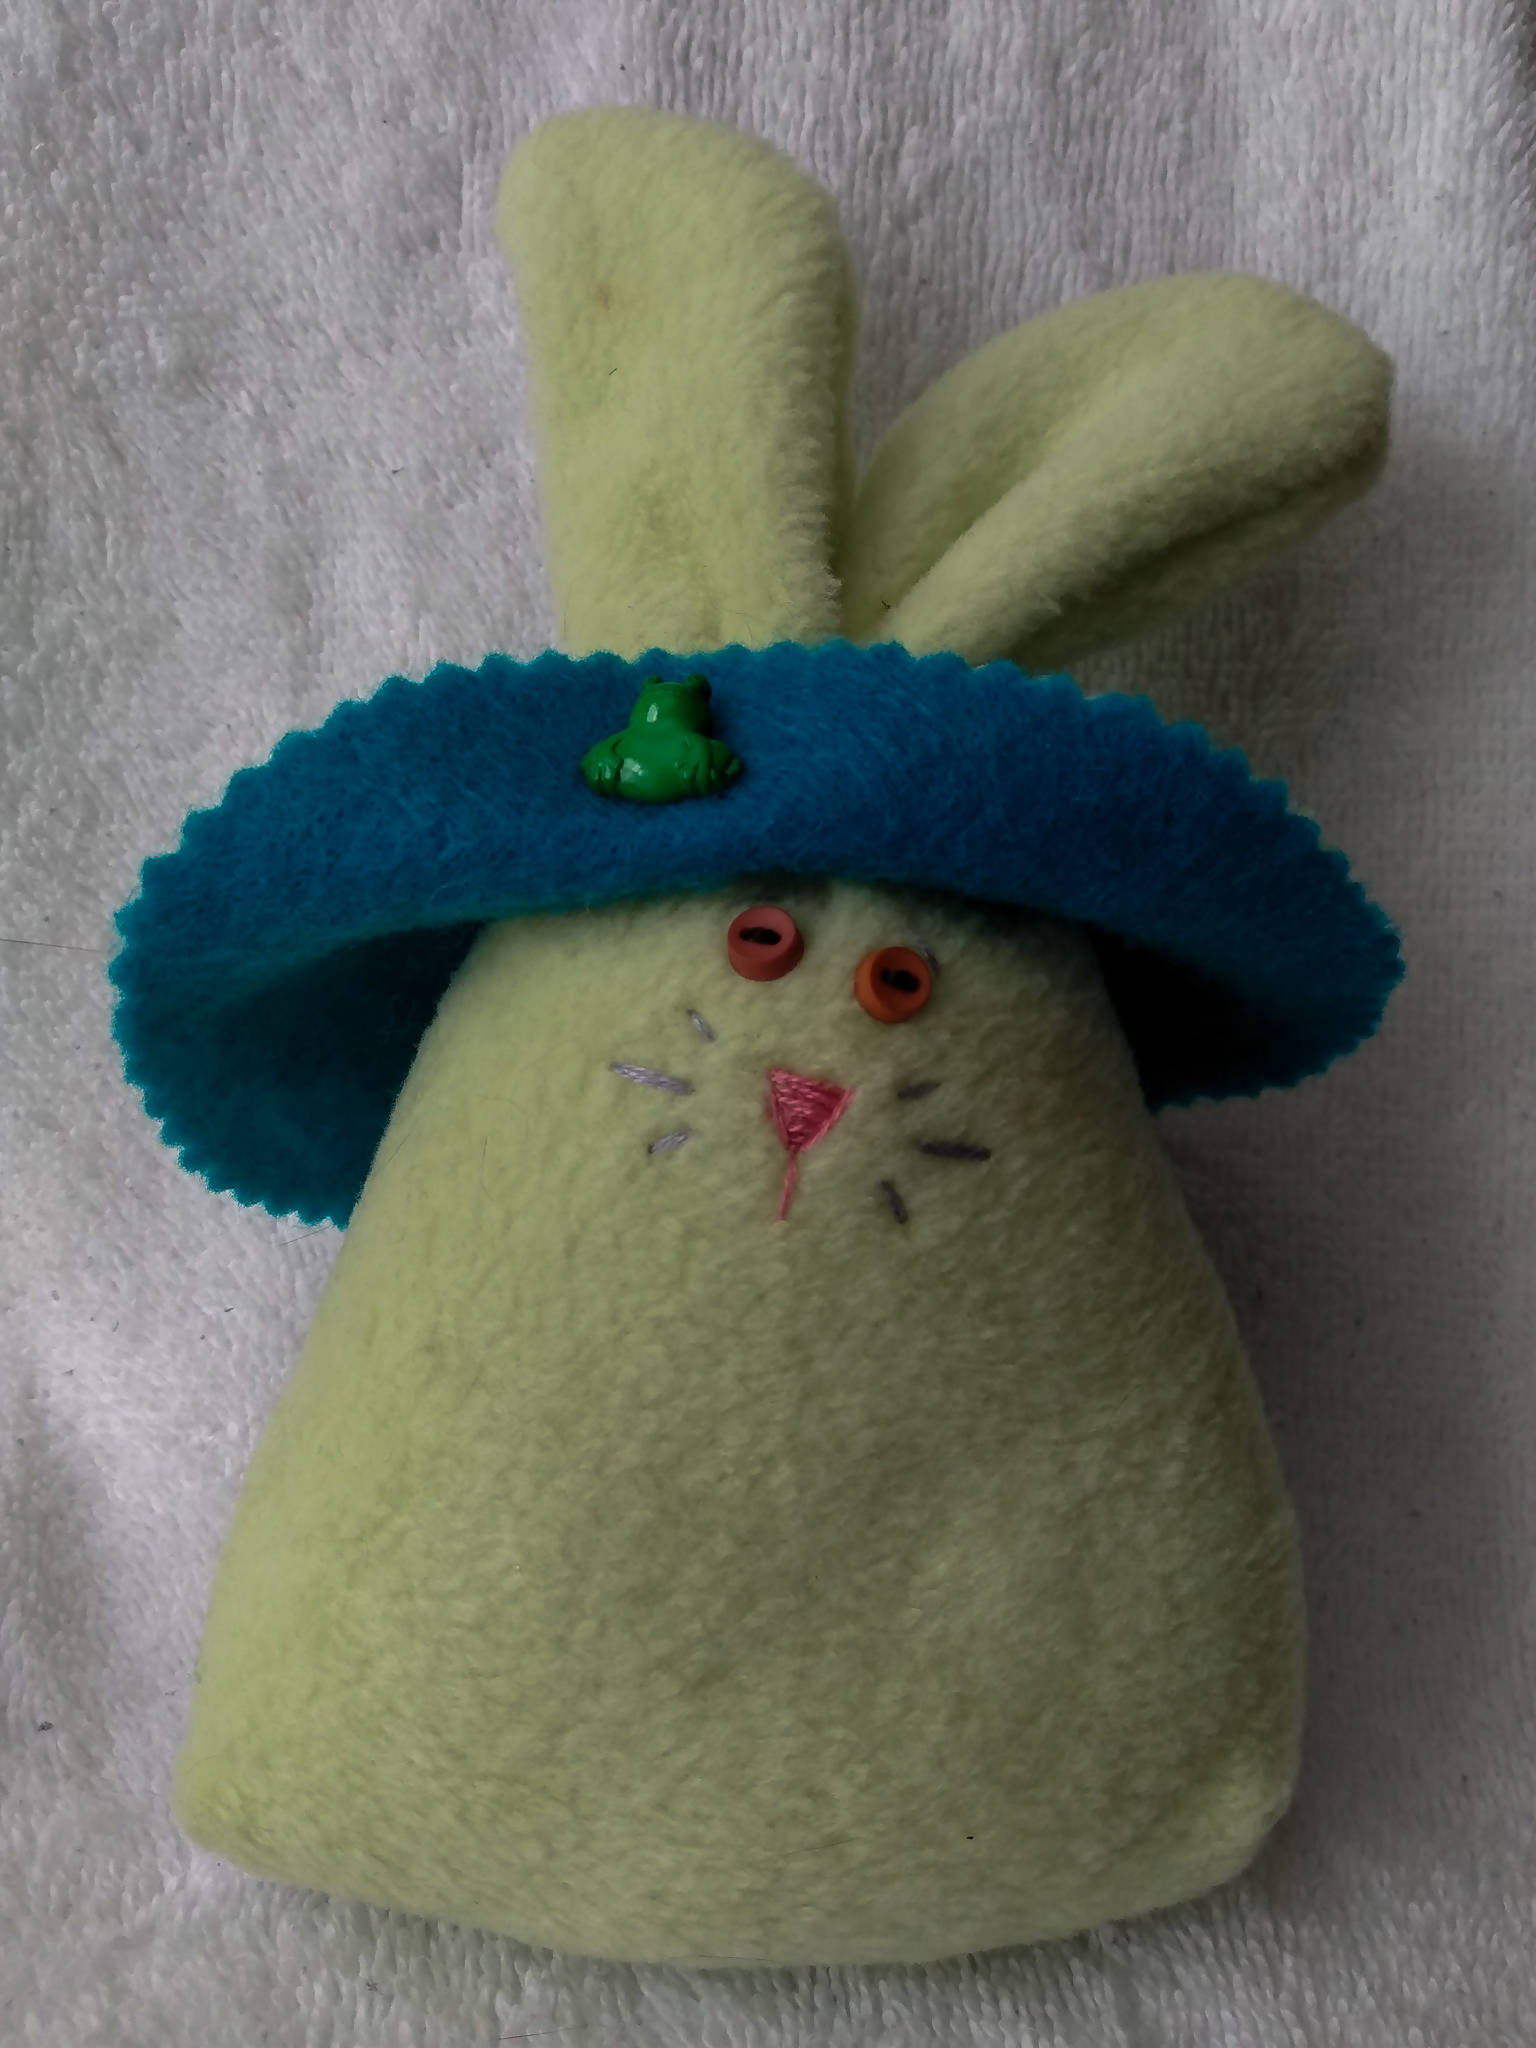 Lemon-Lime Bunny with Tie-Dyed Bonnet